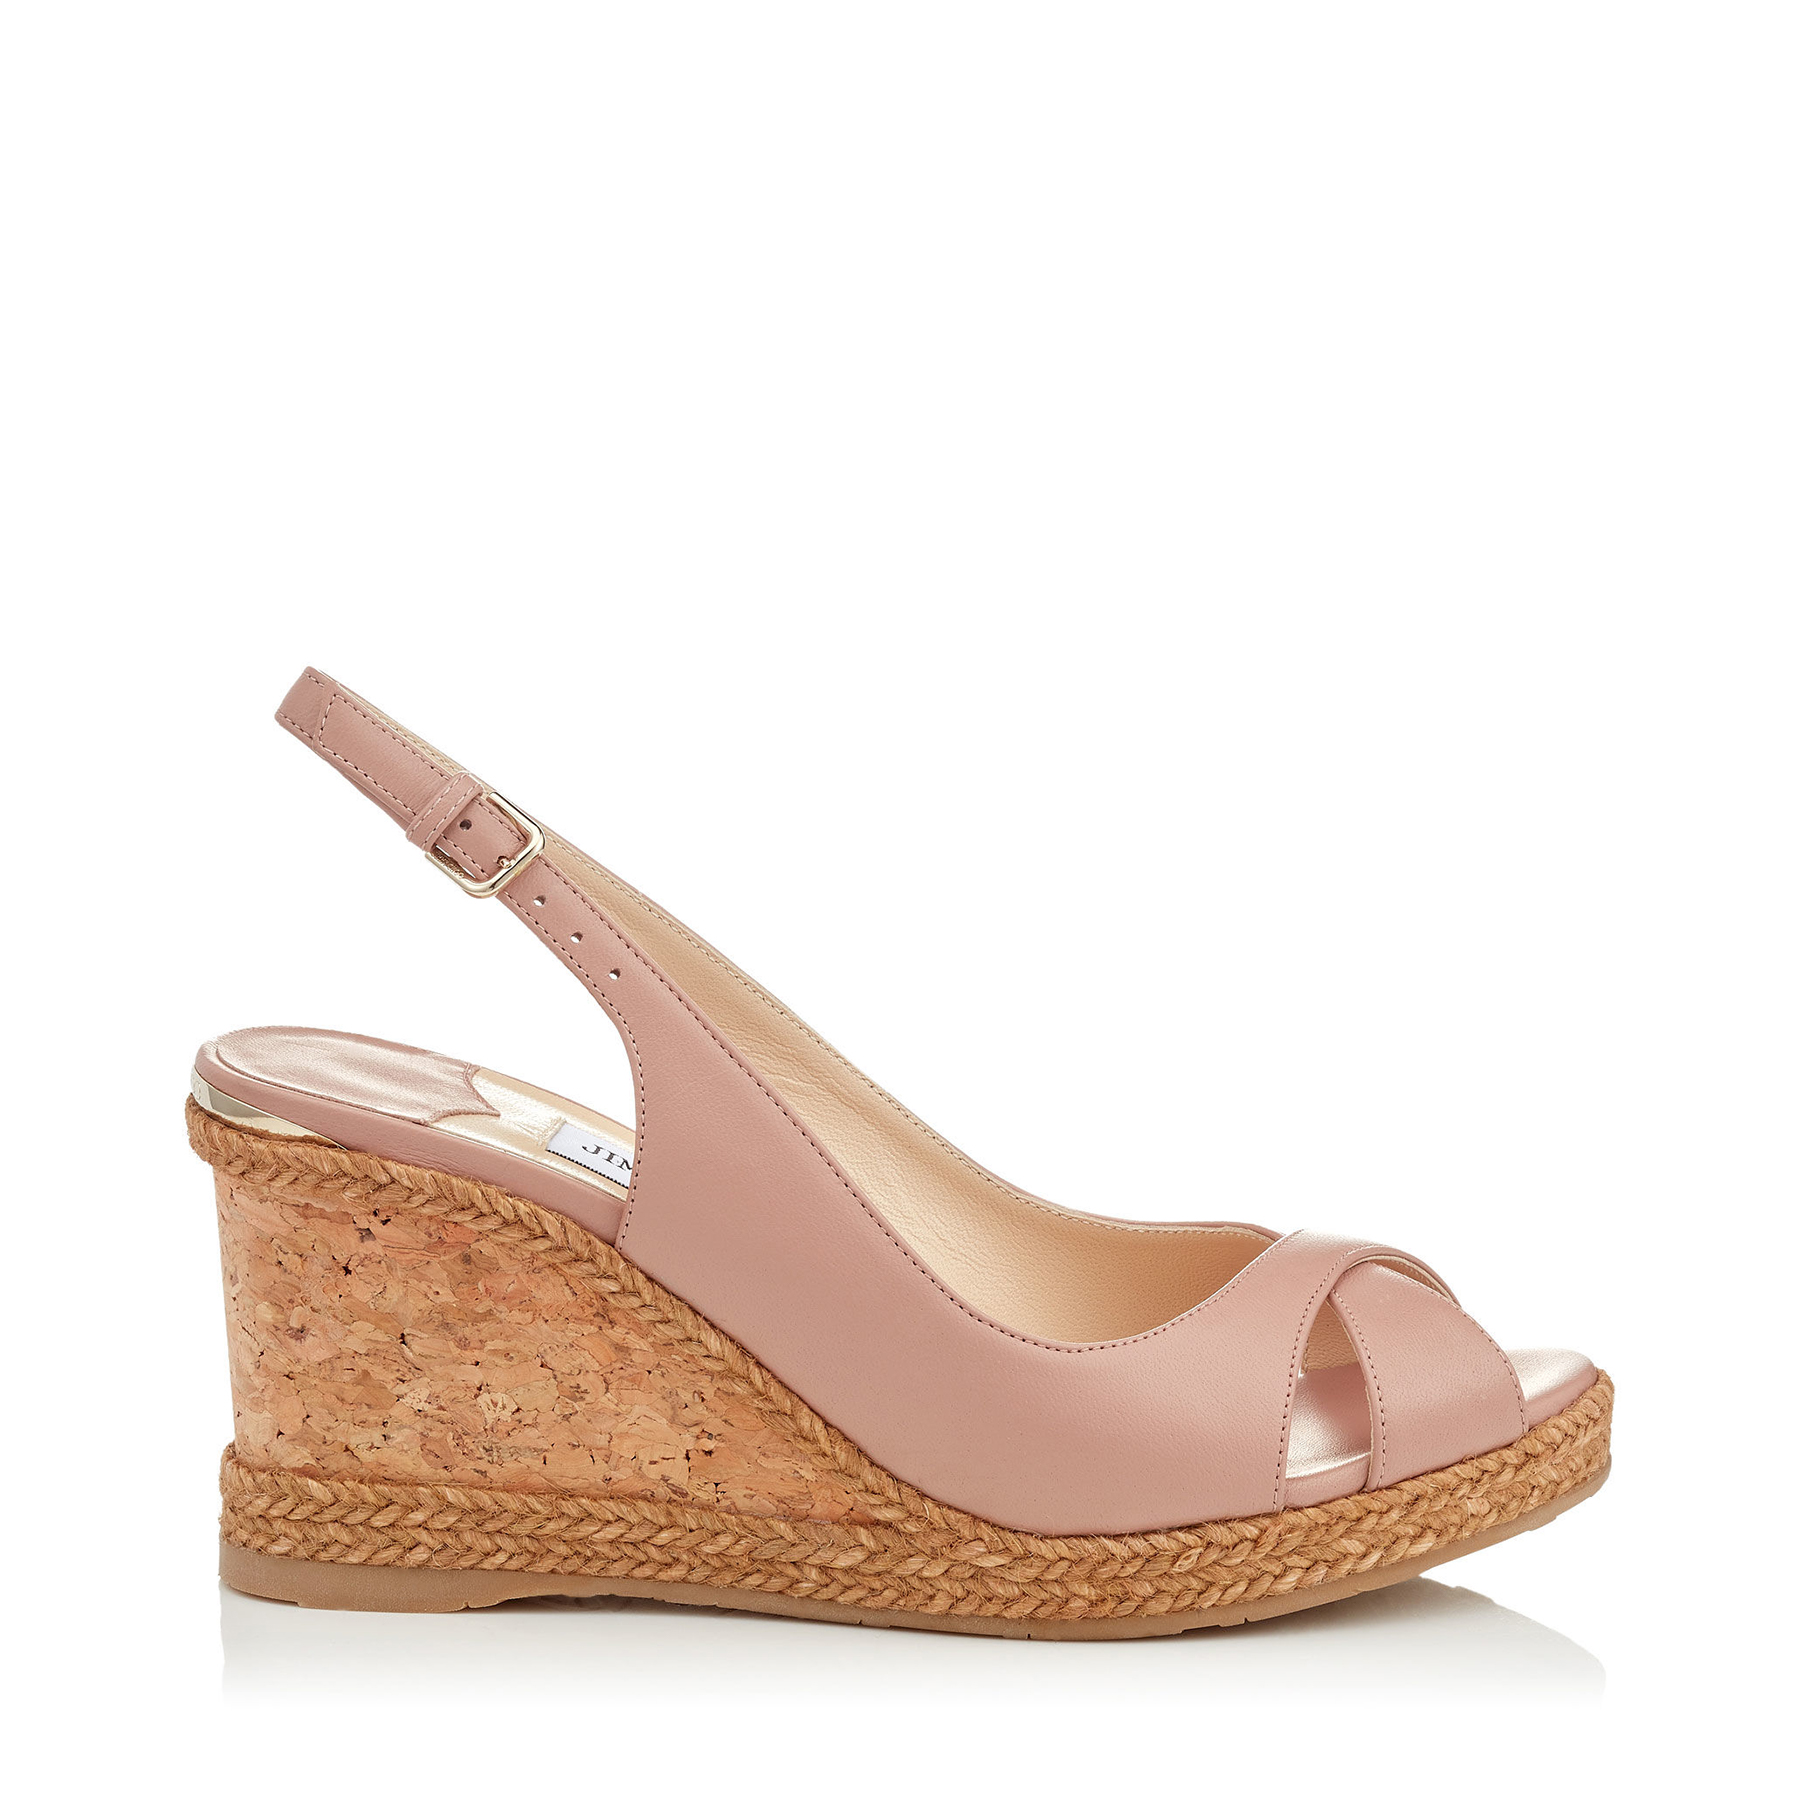 AMELY 80 Ballet Pink Nappa Leather Slingback Wedges by Jimmy Choo